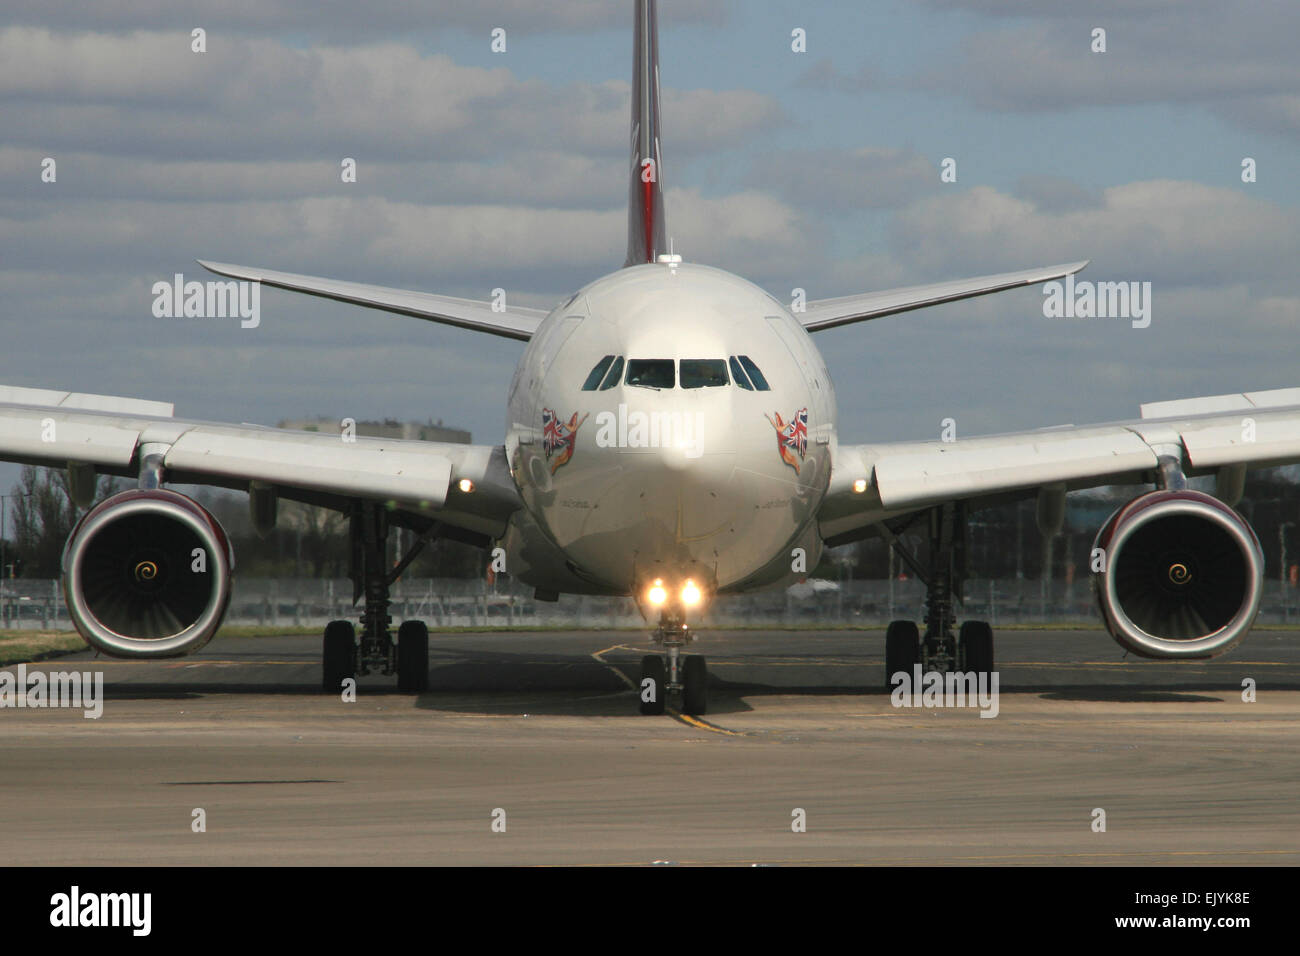 AIRBUS A330 - Stock Image